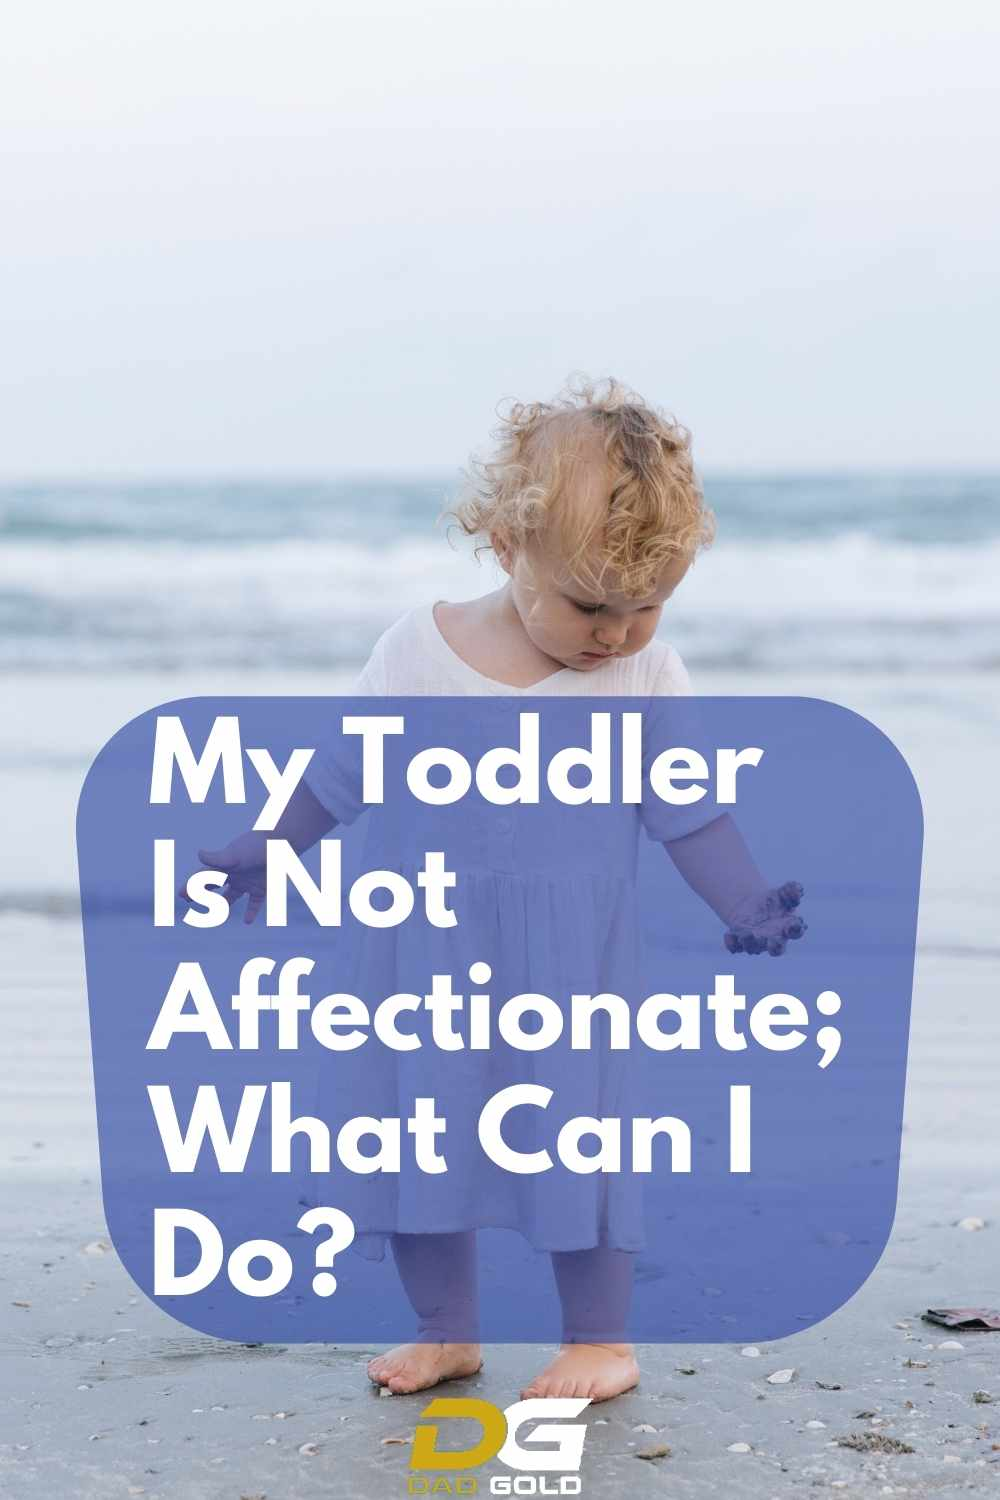 My Toddler Is Not Affectionate; What Can I Do